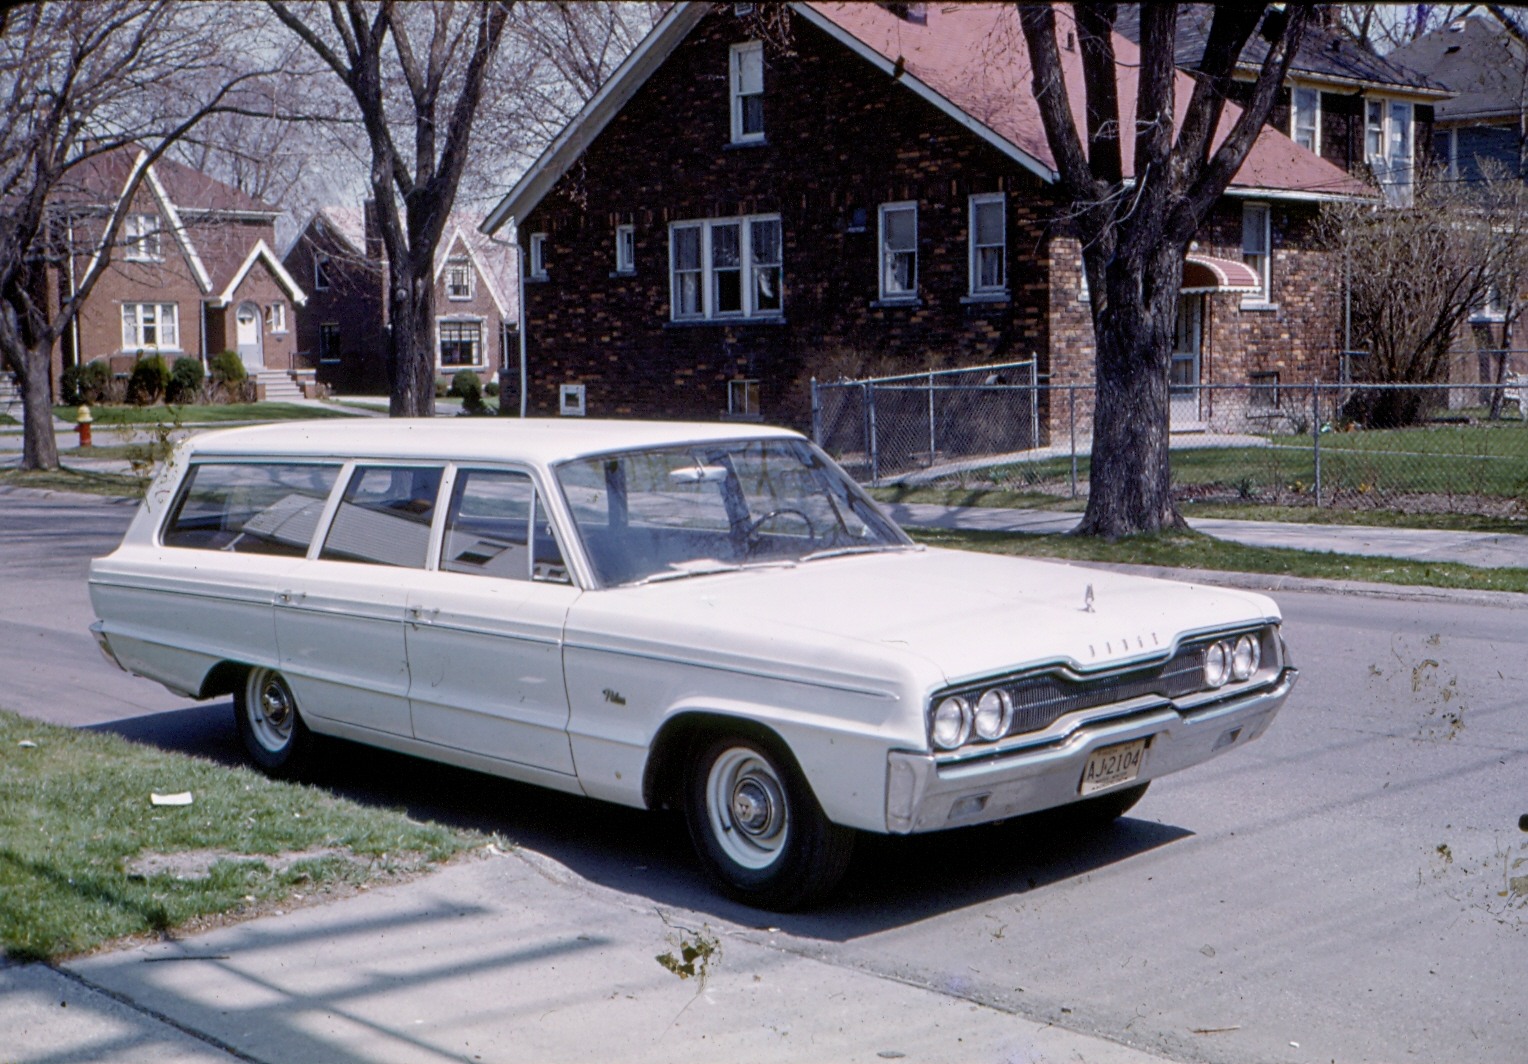 Wiring Diagram For 1965 Dodge Polara 36 Images 1966 Fury Sta Wgn Apr1966 Discuss Detroit Vintage Kodachrome Vehicles At